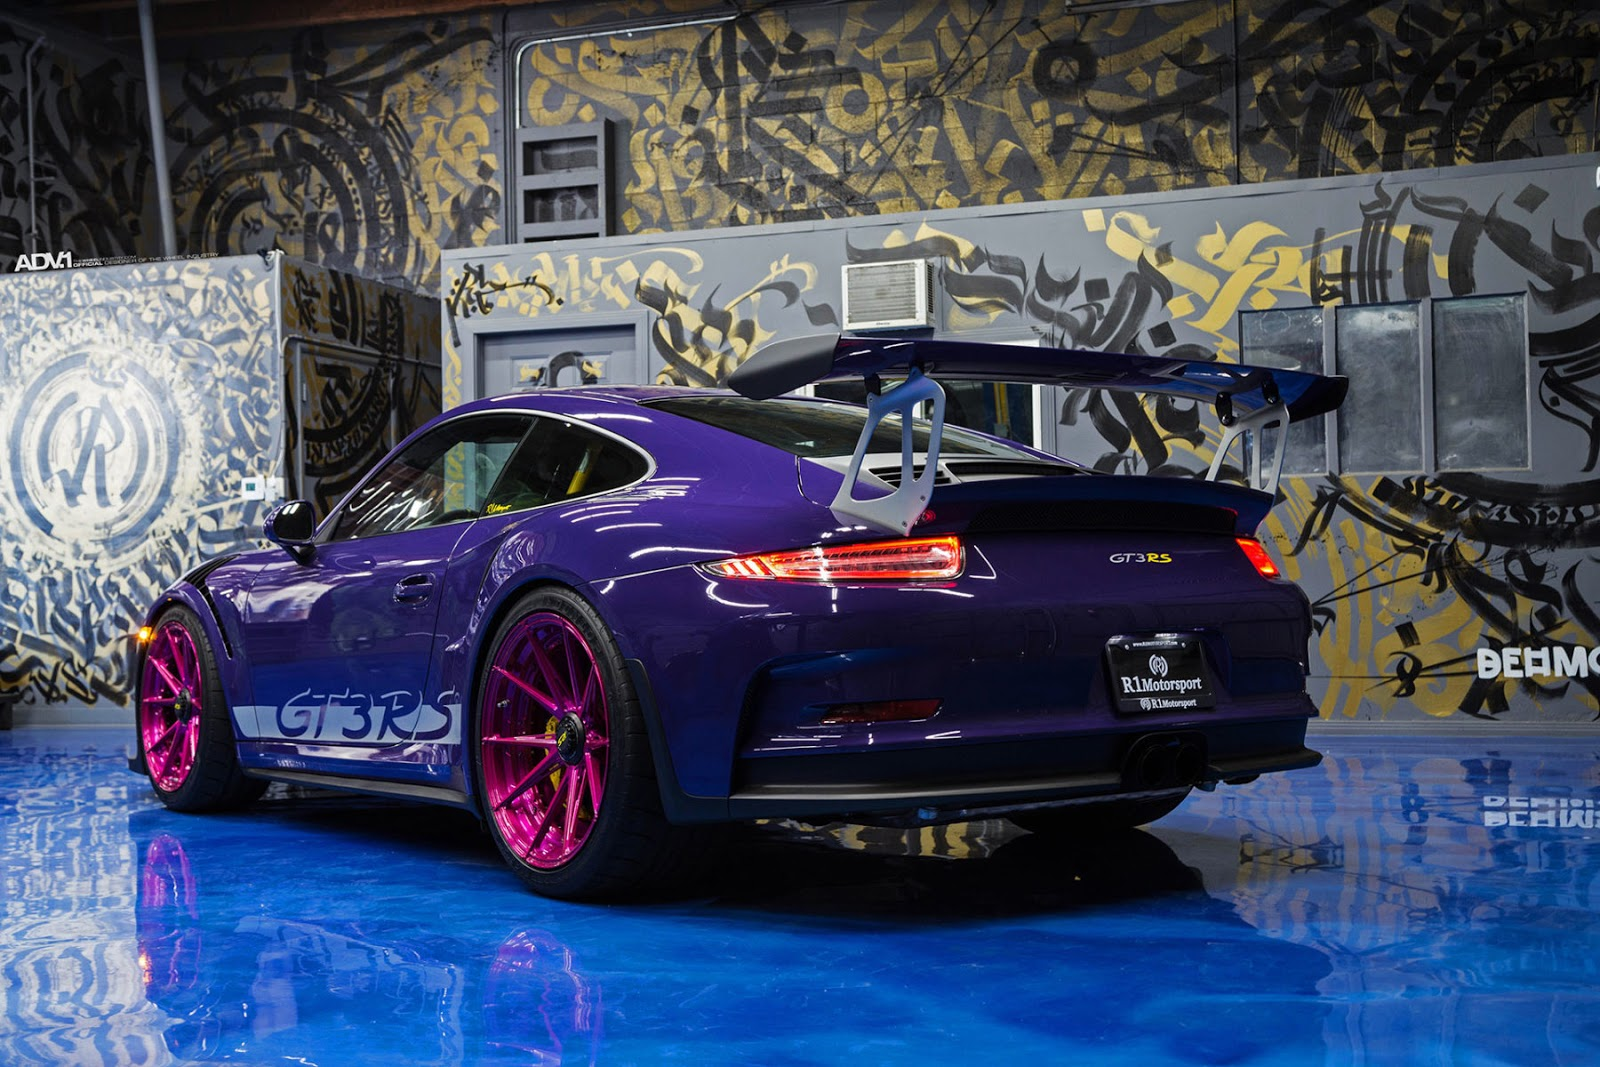 Images Of A Bentley Car Wallpaper Ultraviolet Porsche 911 Gt3 Rs Poses With Pink Wheels